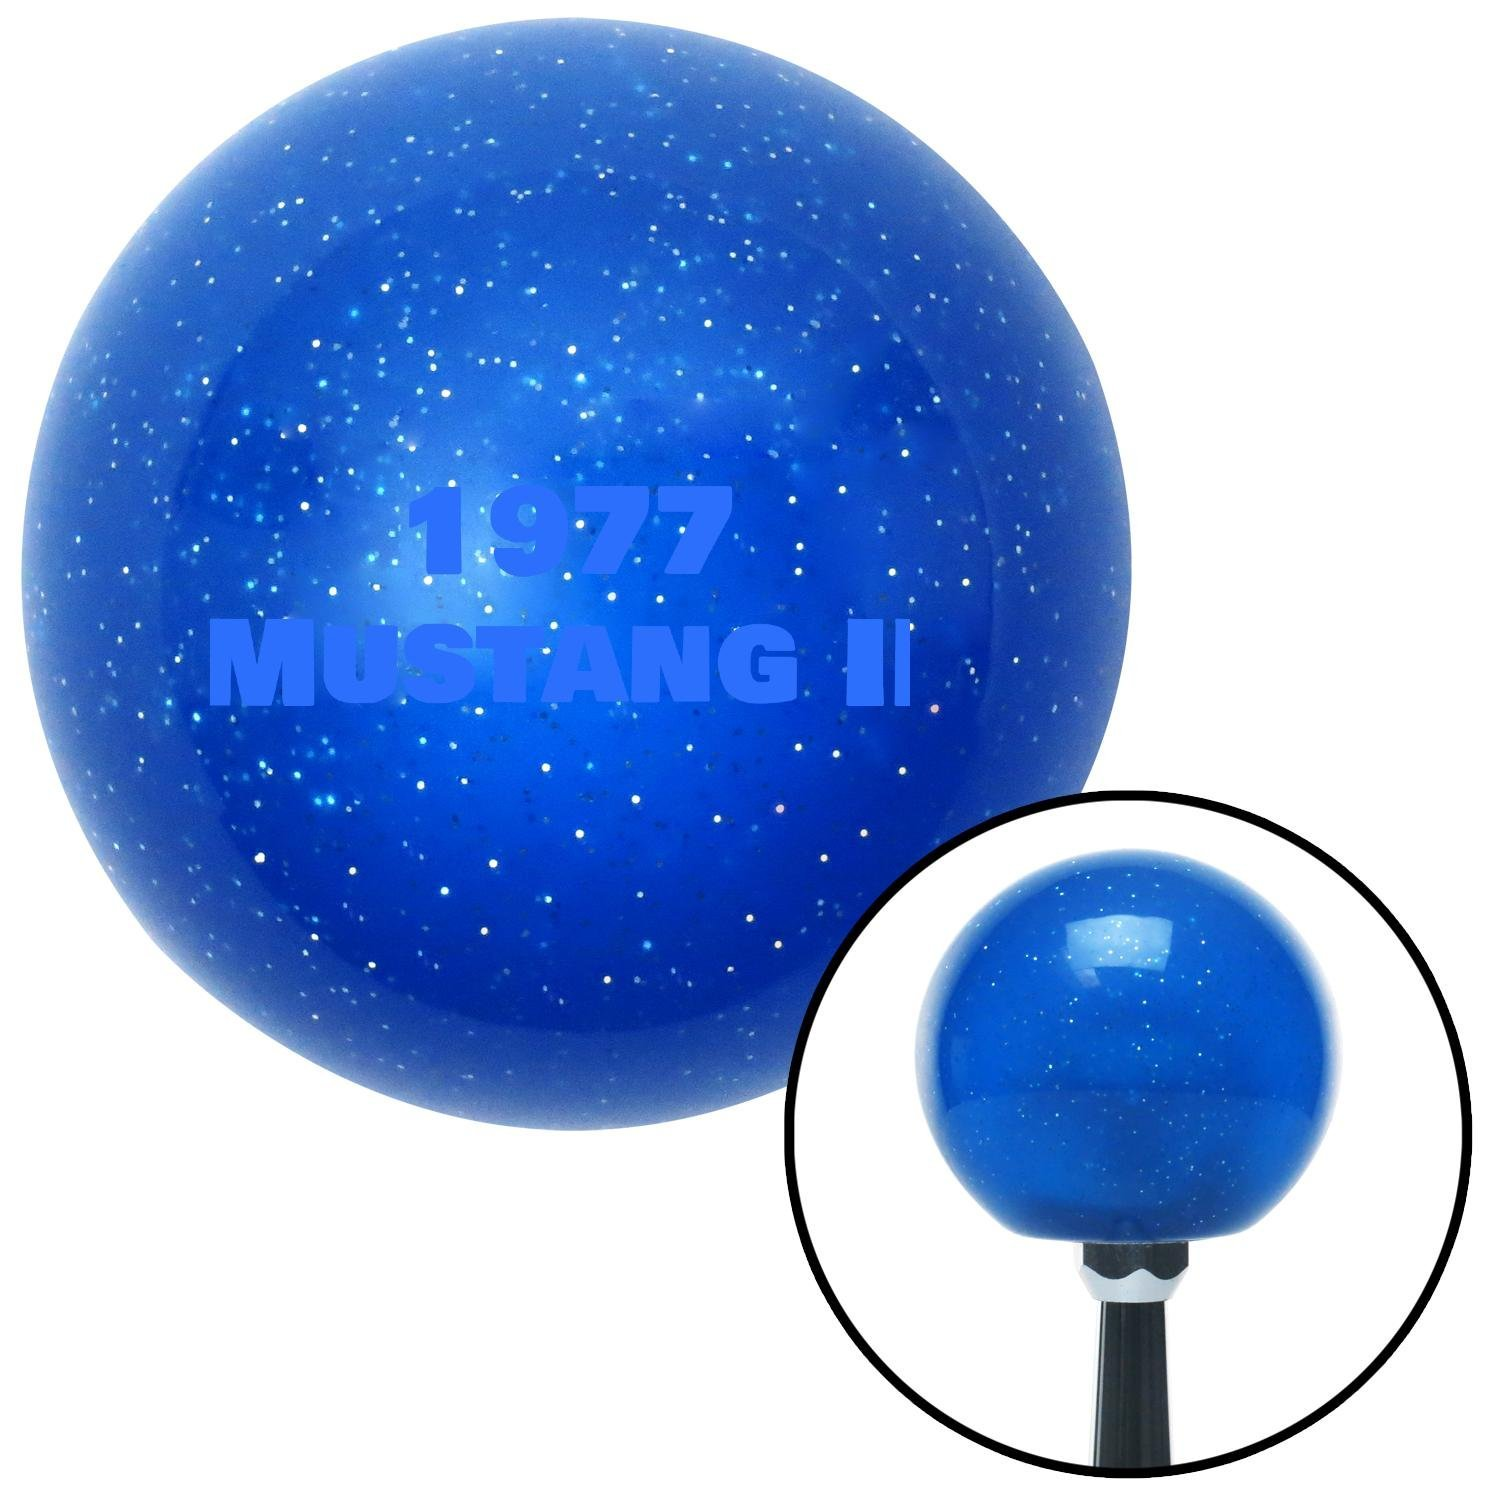 American Shifter 140707 Blue Metal Flake Shift Knob with M16 x 1.5 Insert Blue 1977 Mustang II